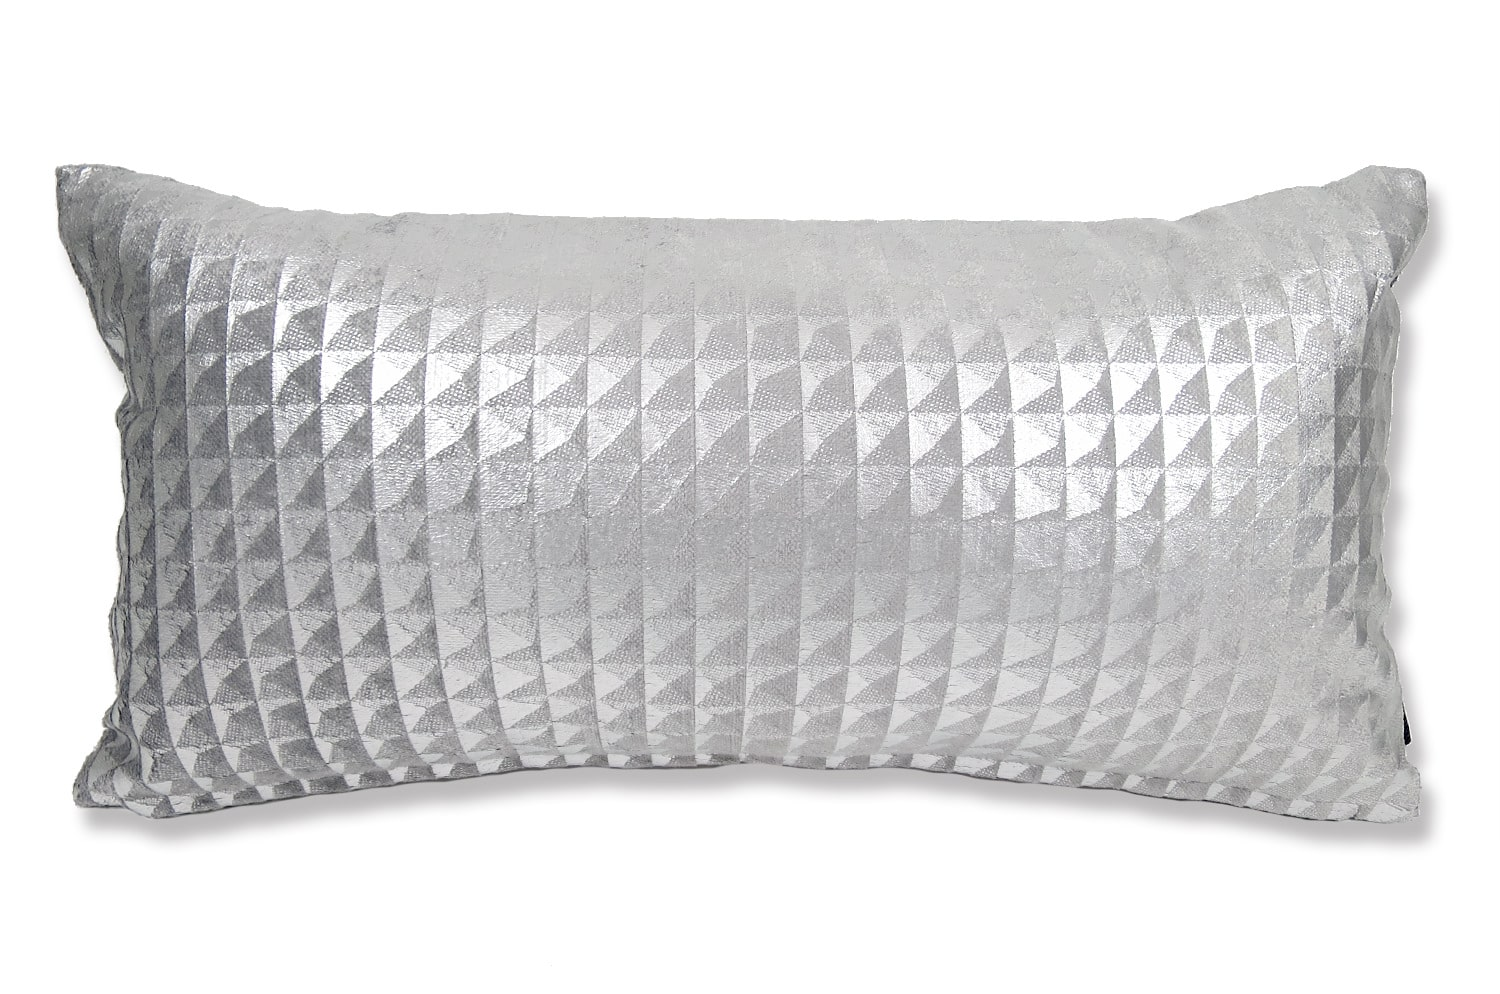 The Moonlit Pyramid Silver cushion by Kirkby Design x ELEY KISHIMOTO(イーリー キシモト)fabric クッション 50×25cm 中材付